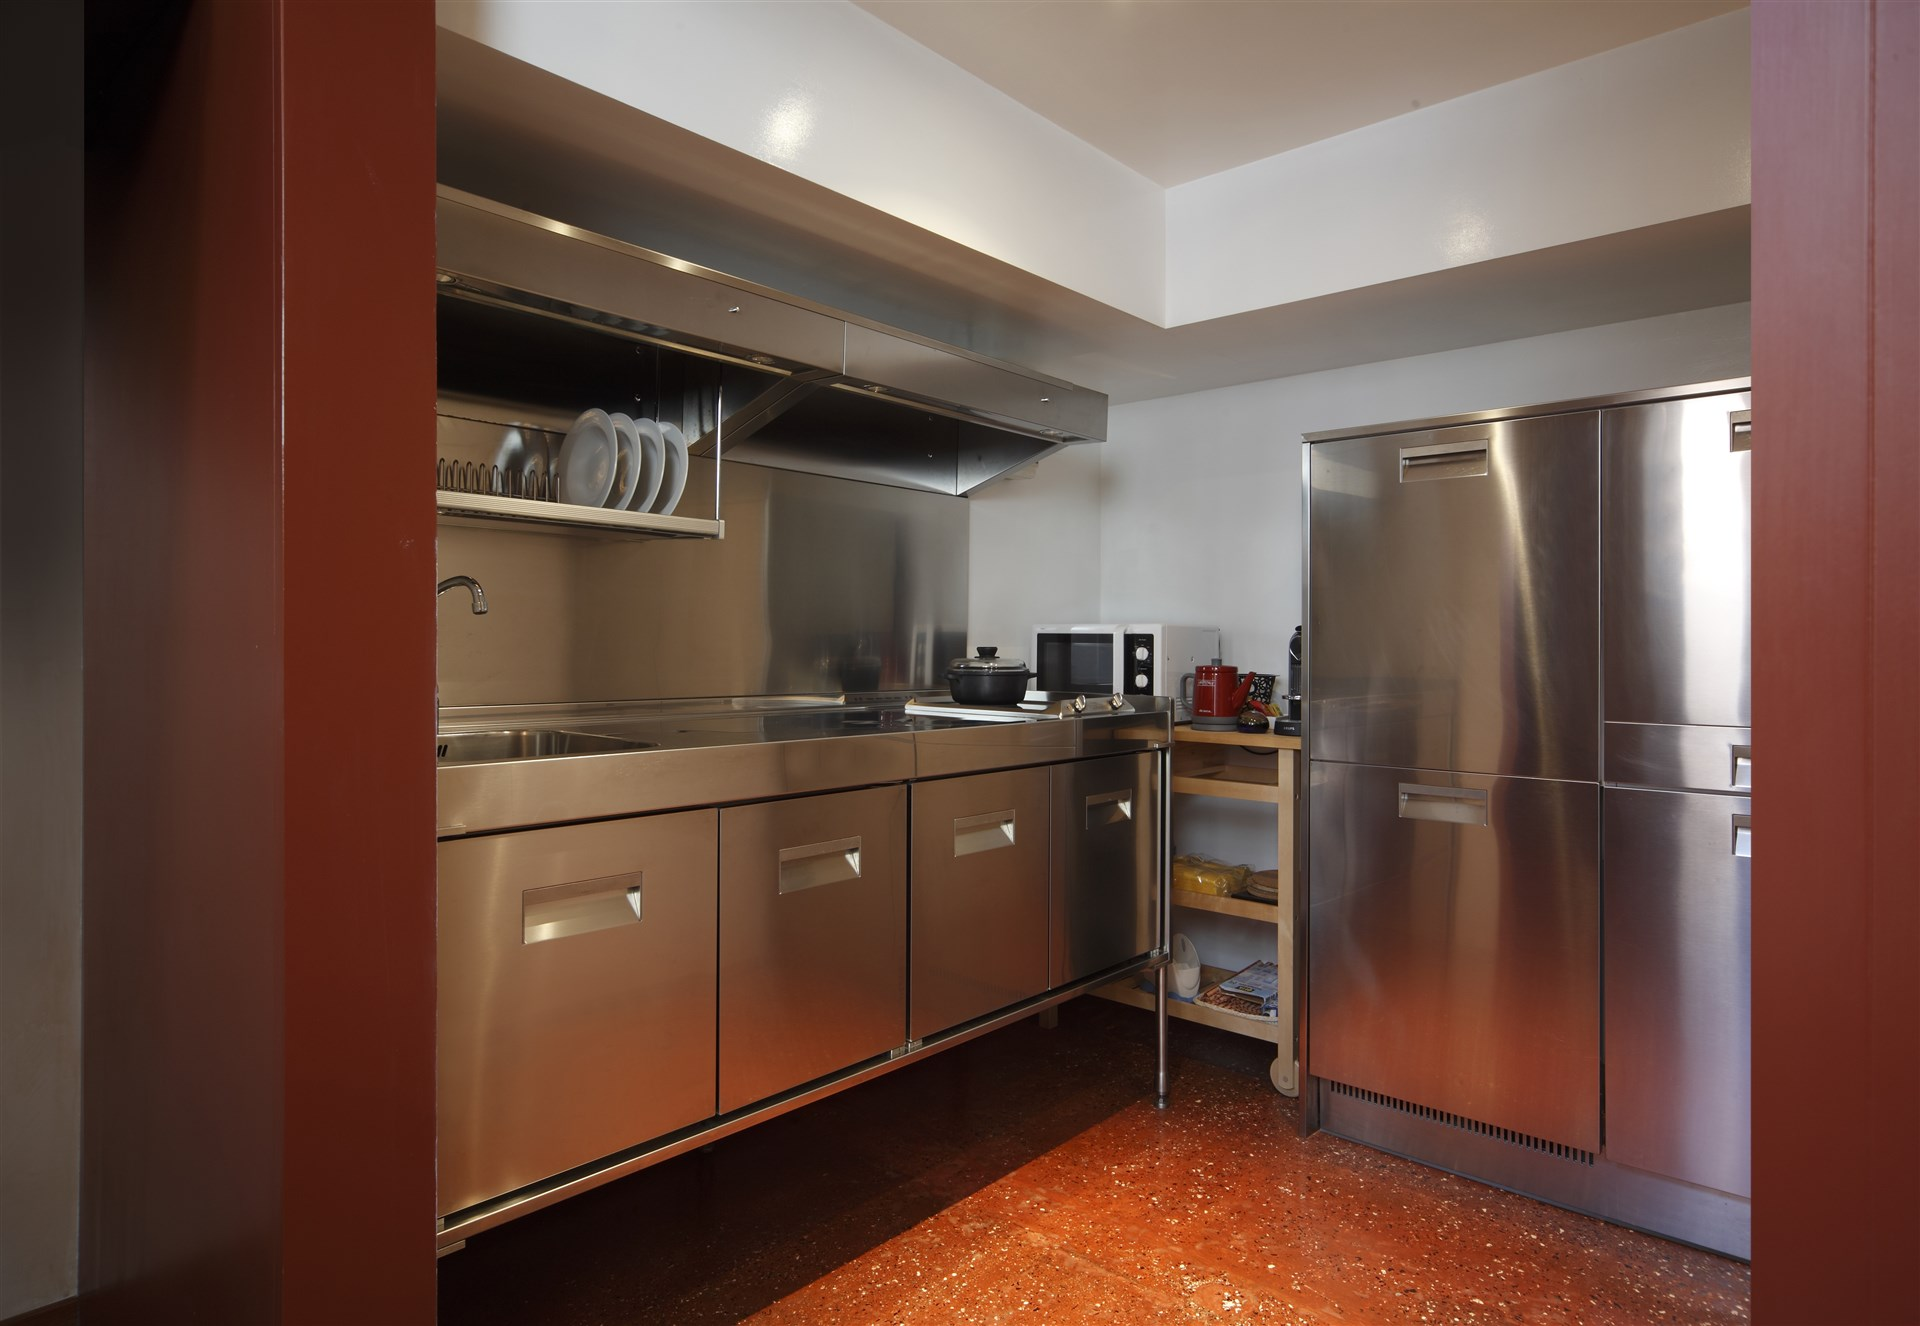 08-The-stainless-Kitchen-has-been-supplied-with-all-the-modern-comfort-microwave-oven-dishwasher-washing-machine-kettle-and-Nespresso-coffee-maker